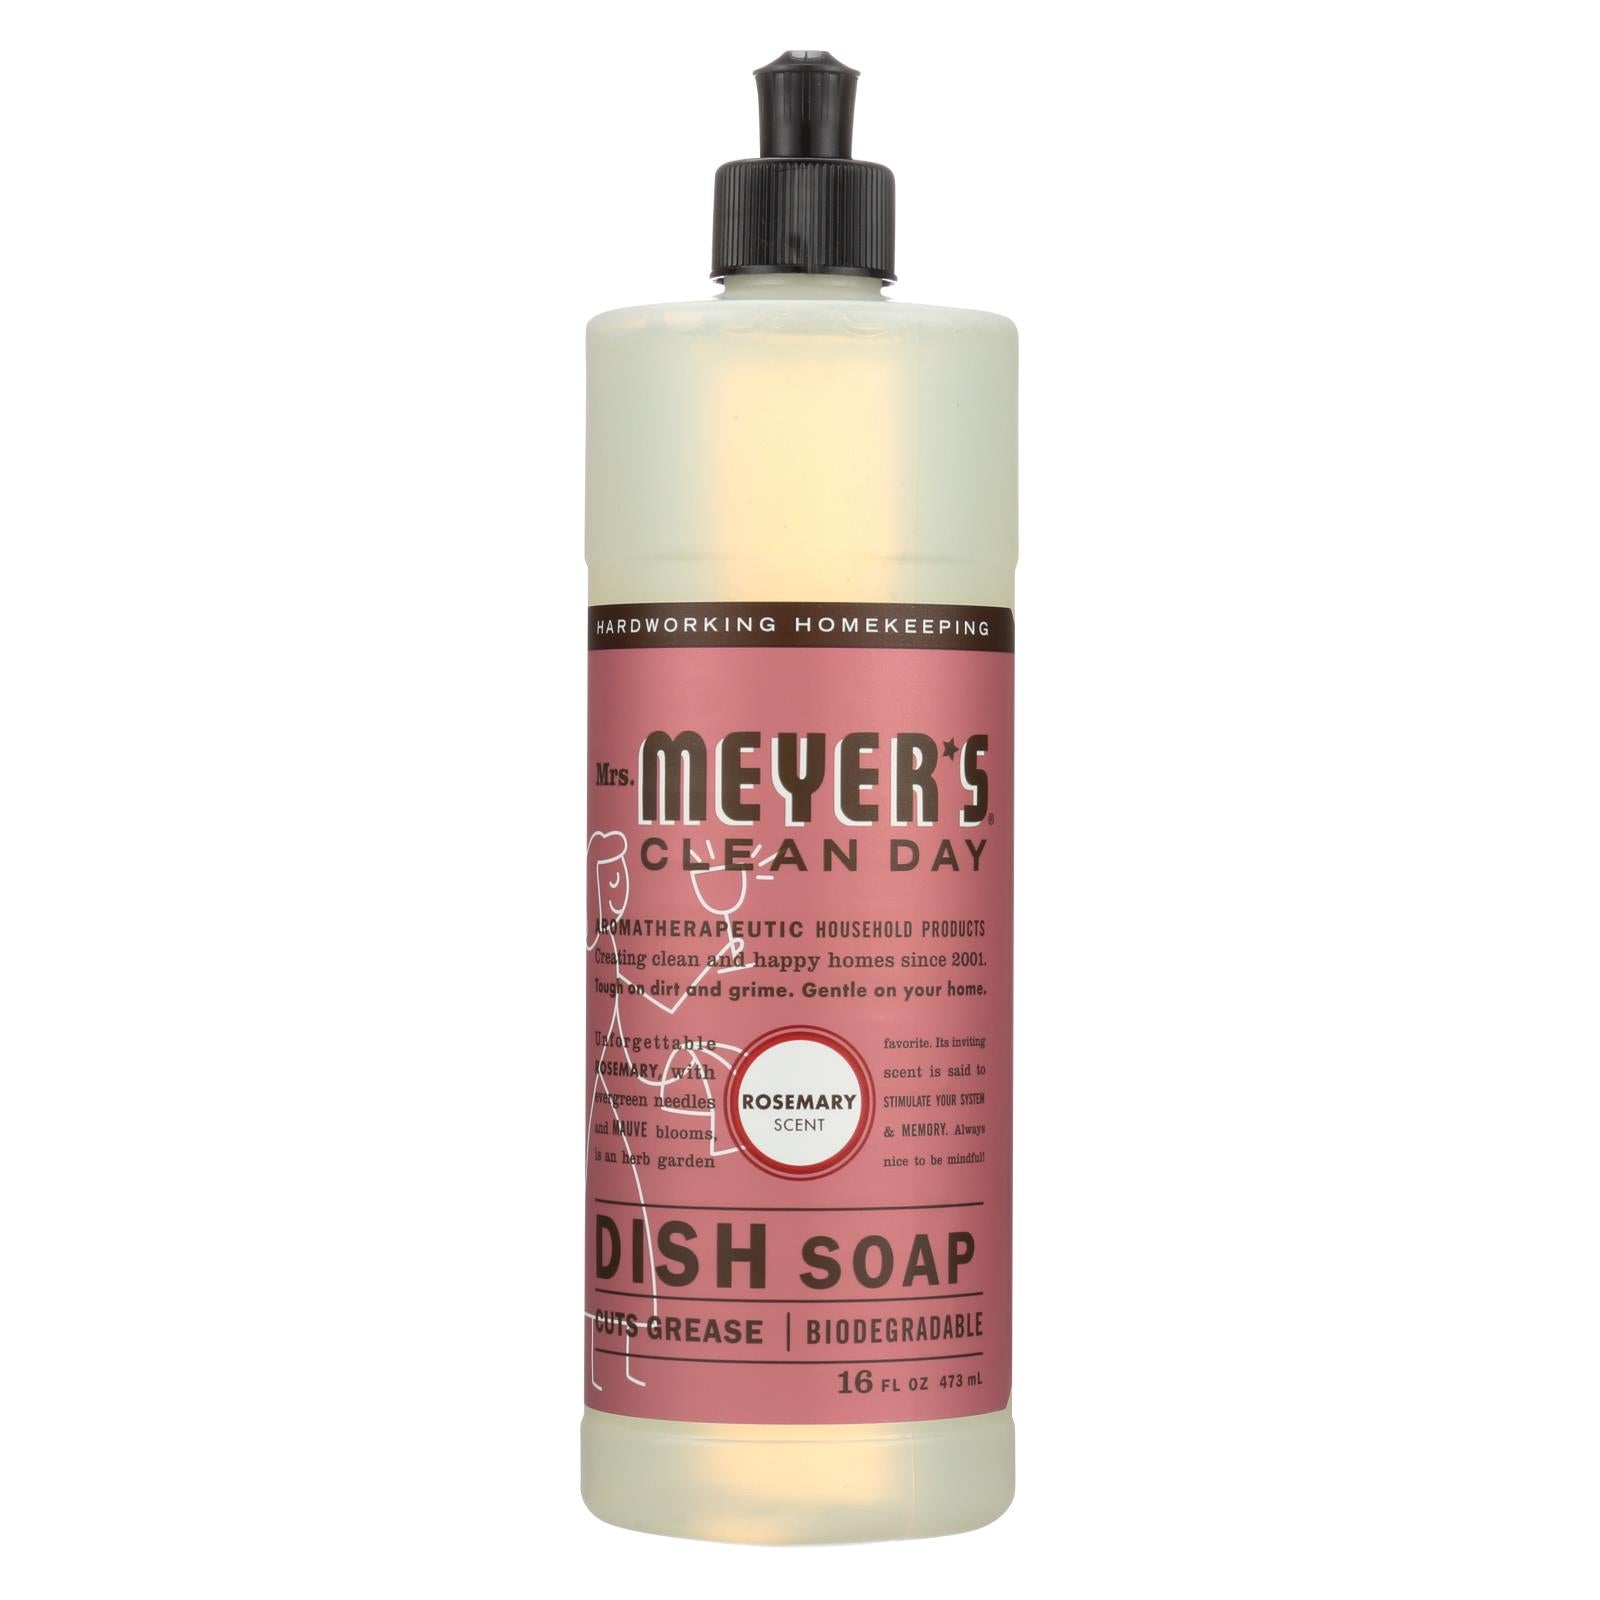 Buy Mrs. Meyer's Clean Day - Liquid Dish Soap - Rosemary - 16 oz - Dishwashing from Veroeco.com